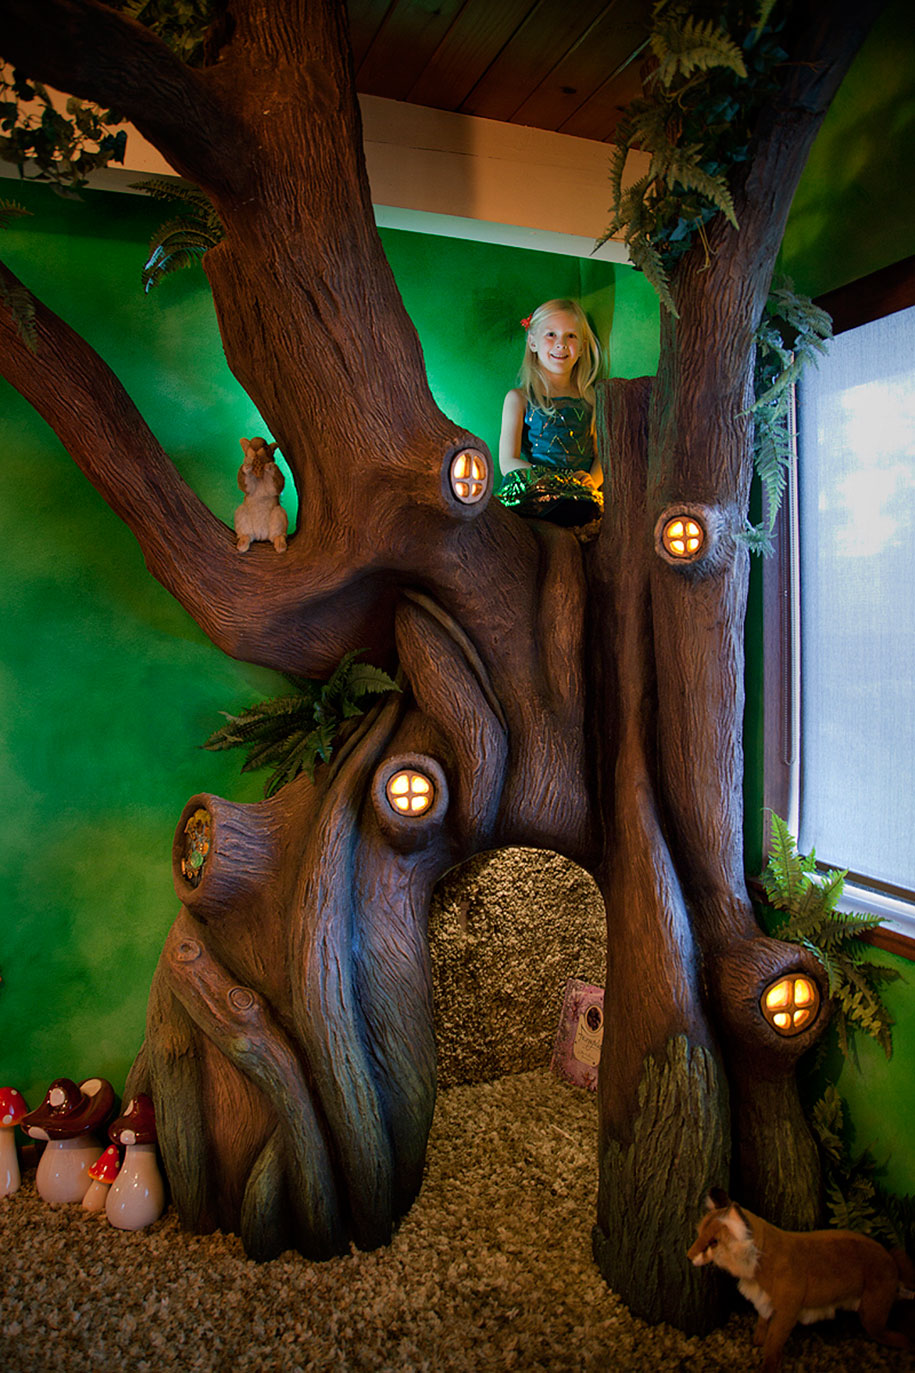 dad-build-daughter-fairytale-bedroom-radamshome-8